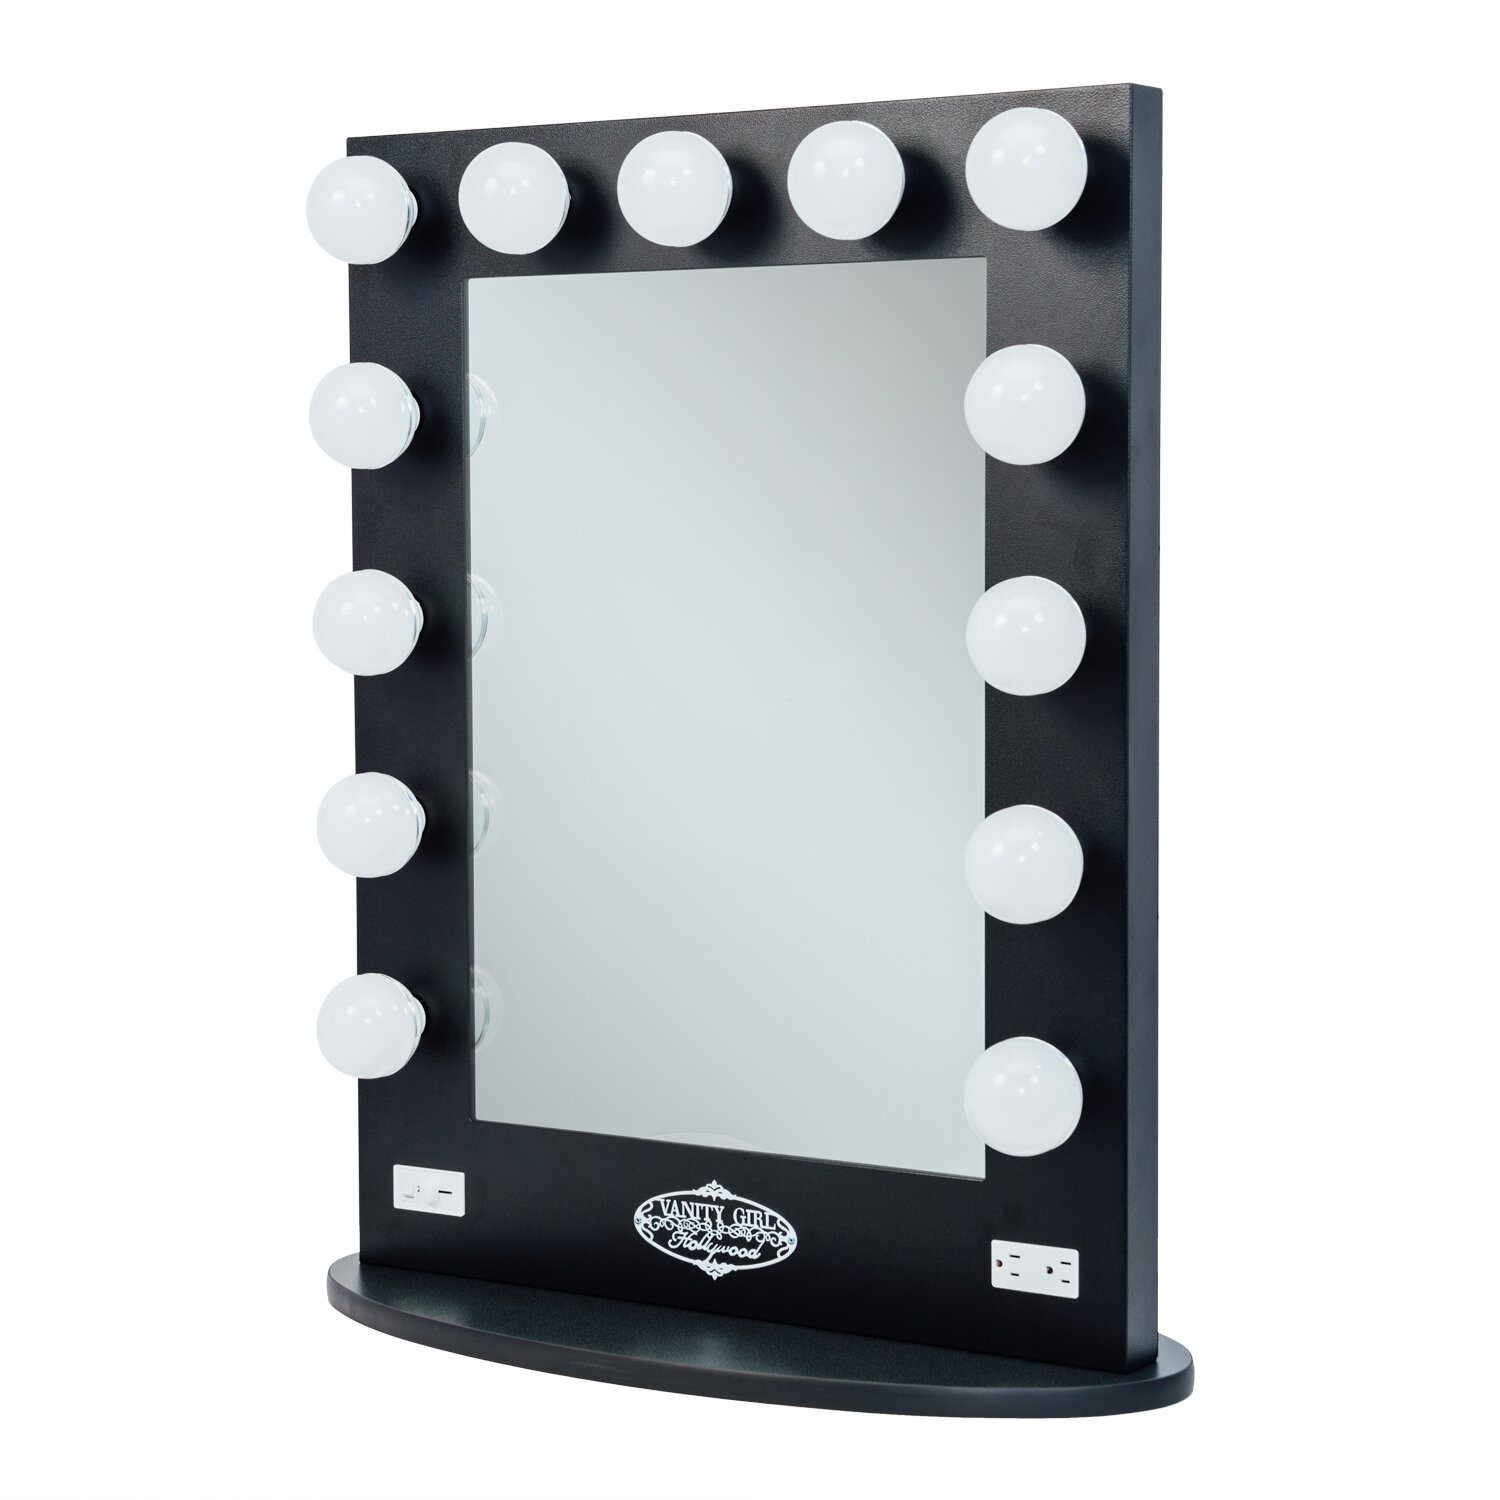 vanity girl hollywood broadway lighted vanity mirror reviews wayfair. Black Bedroom Furniture Sets. Home Design Ideas